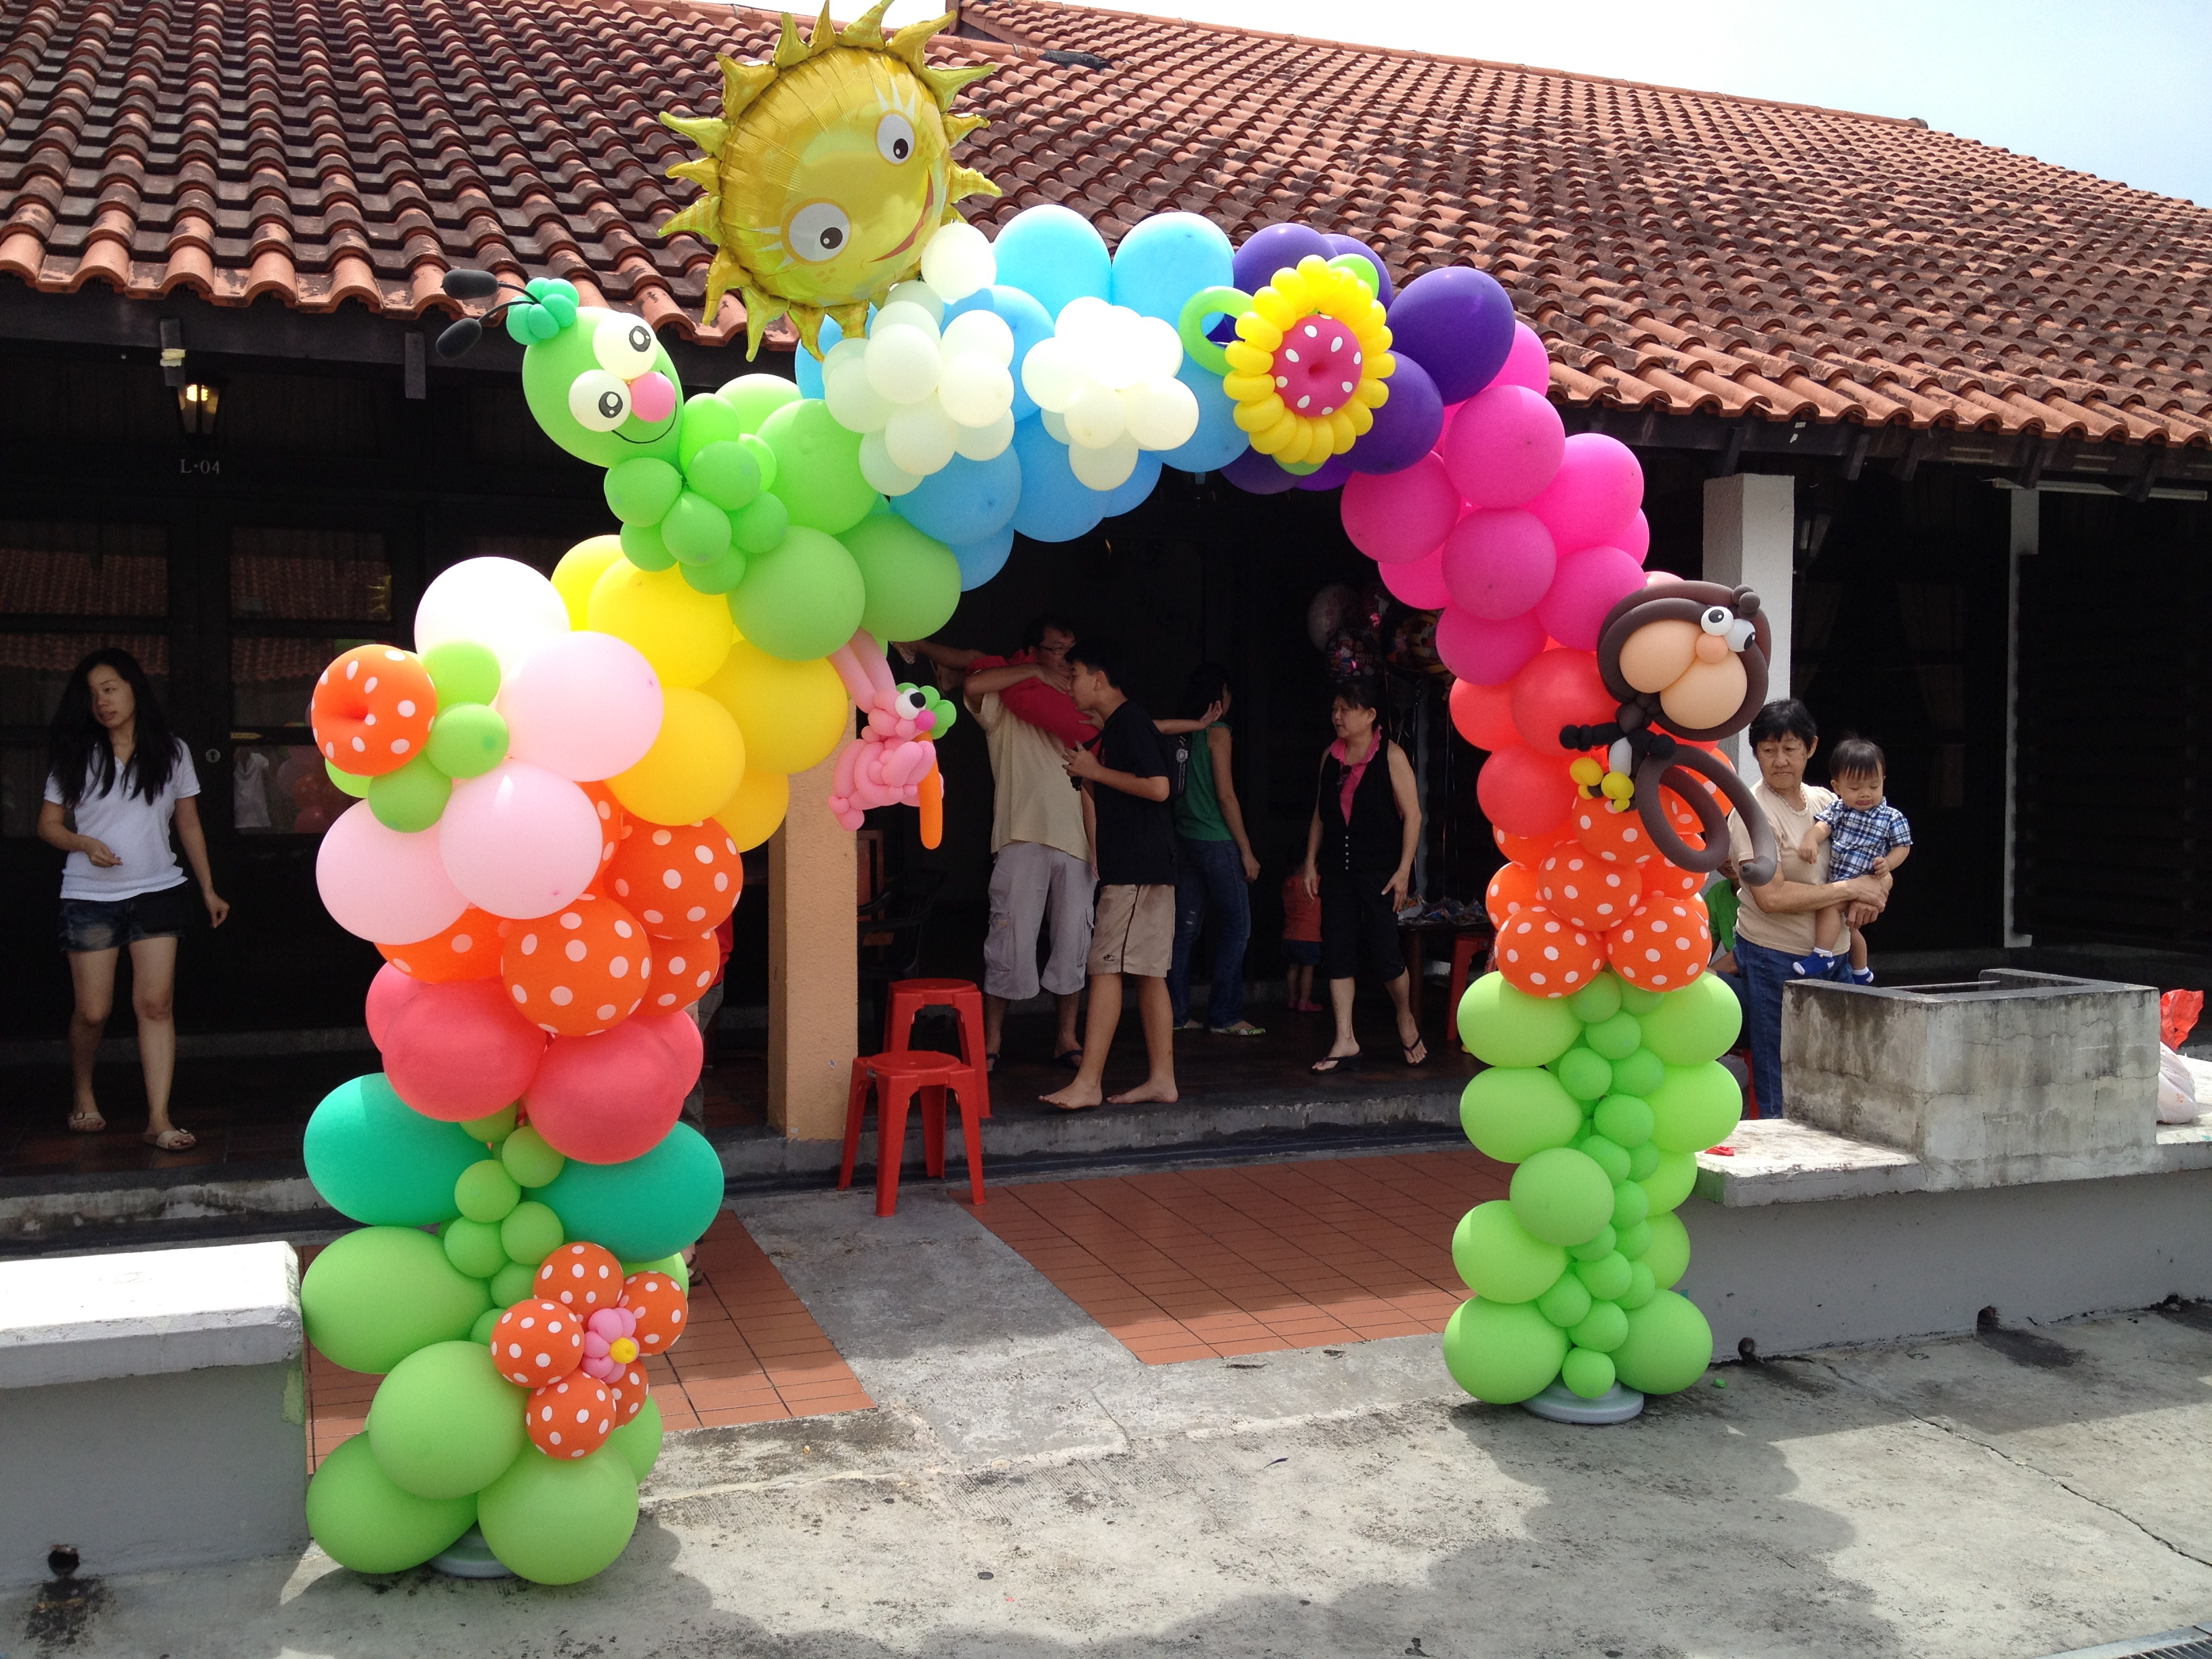 Great Balloon Arch Decorations Ideas 3264 x 2448 · 2899 kB · jpeg